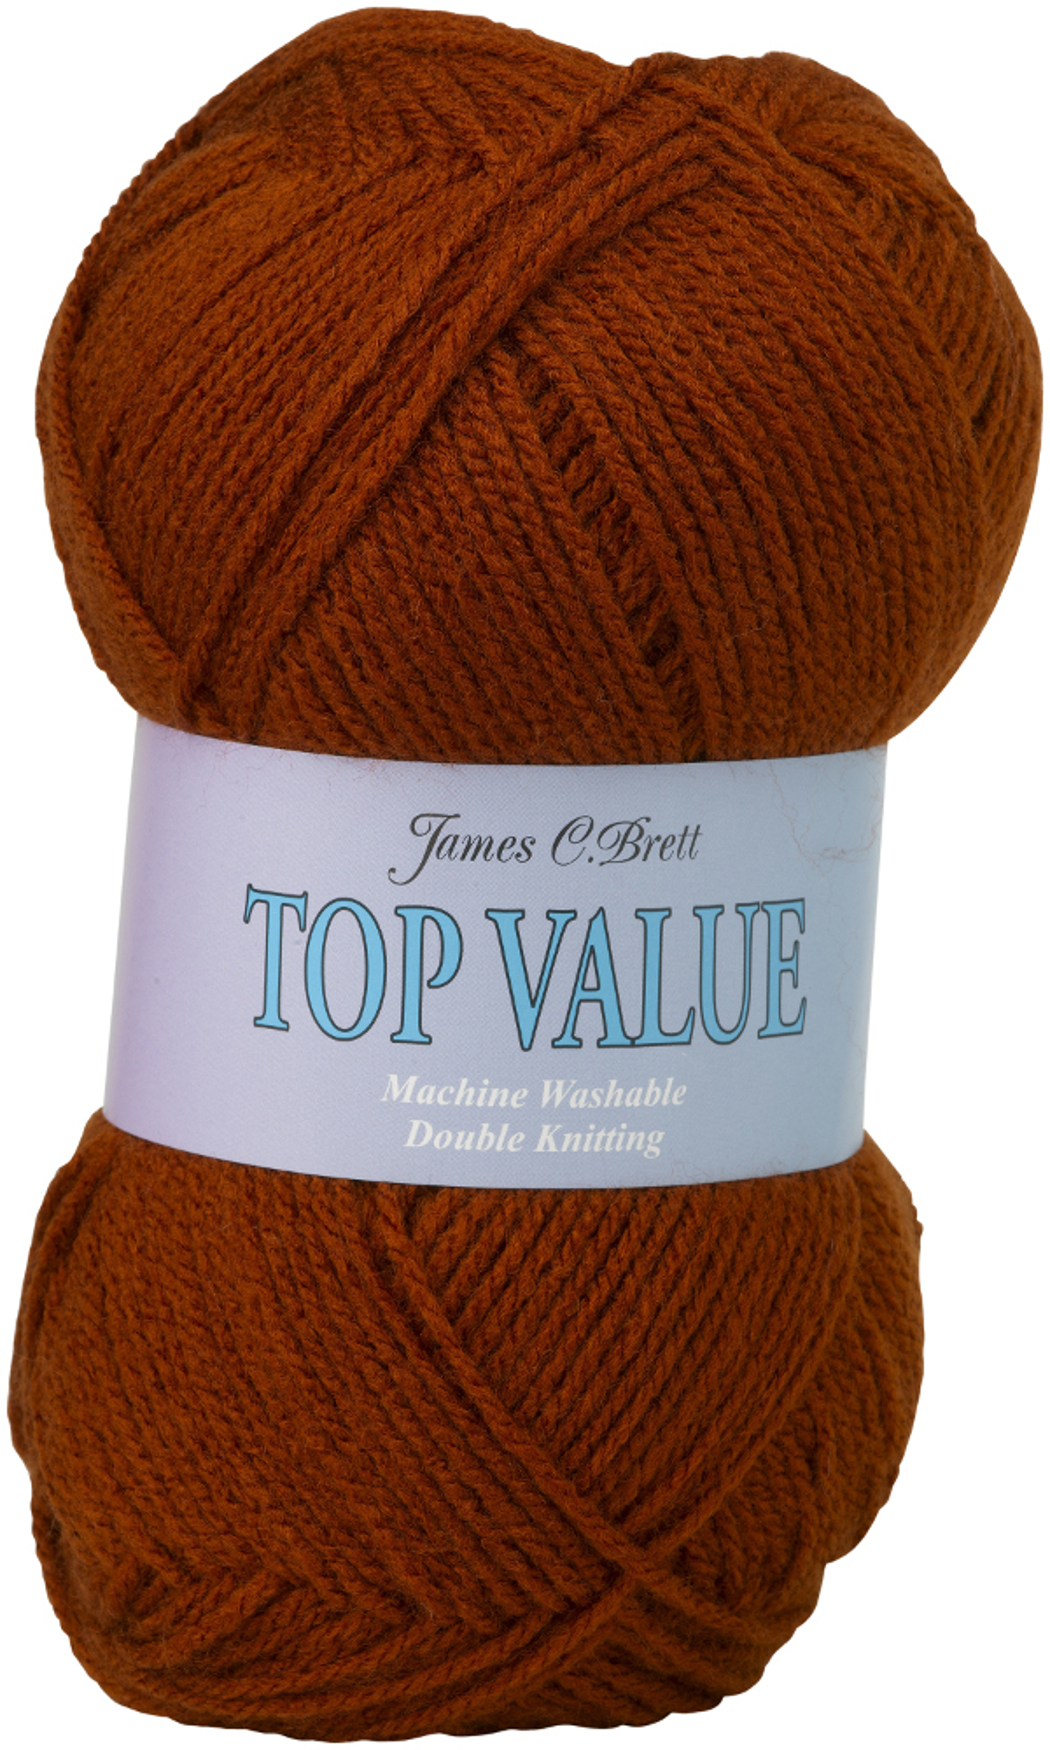 Dk Yarn : ... Top Value DK Machine Washable Yarn 100% Acrylic Double Knitting Wool